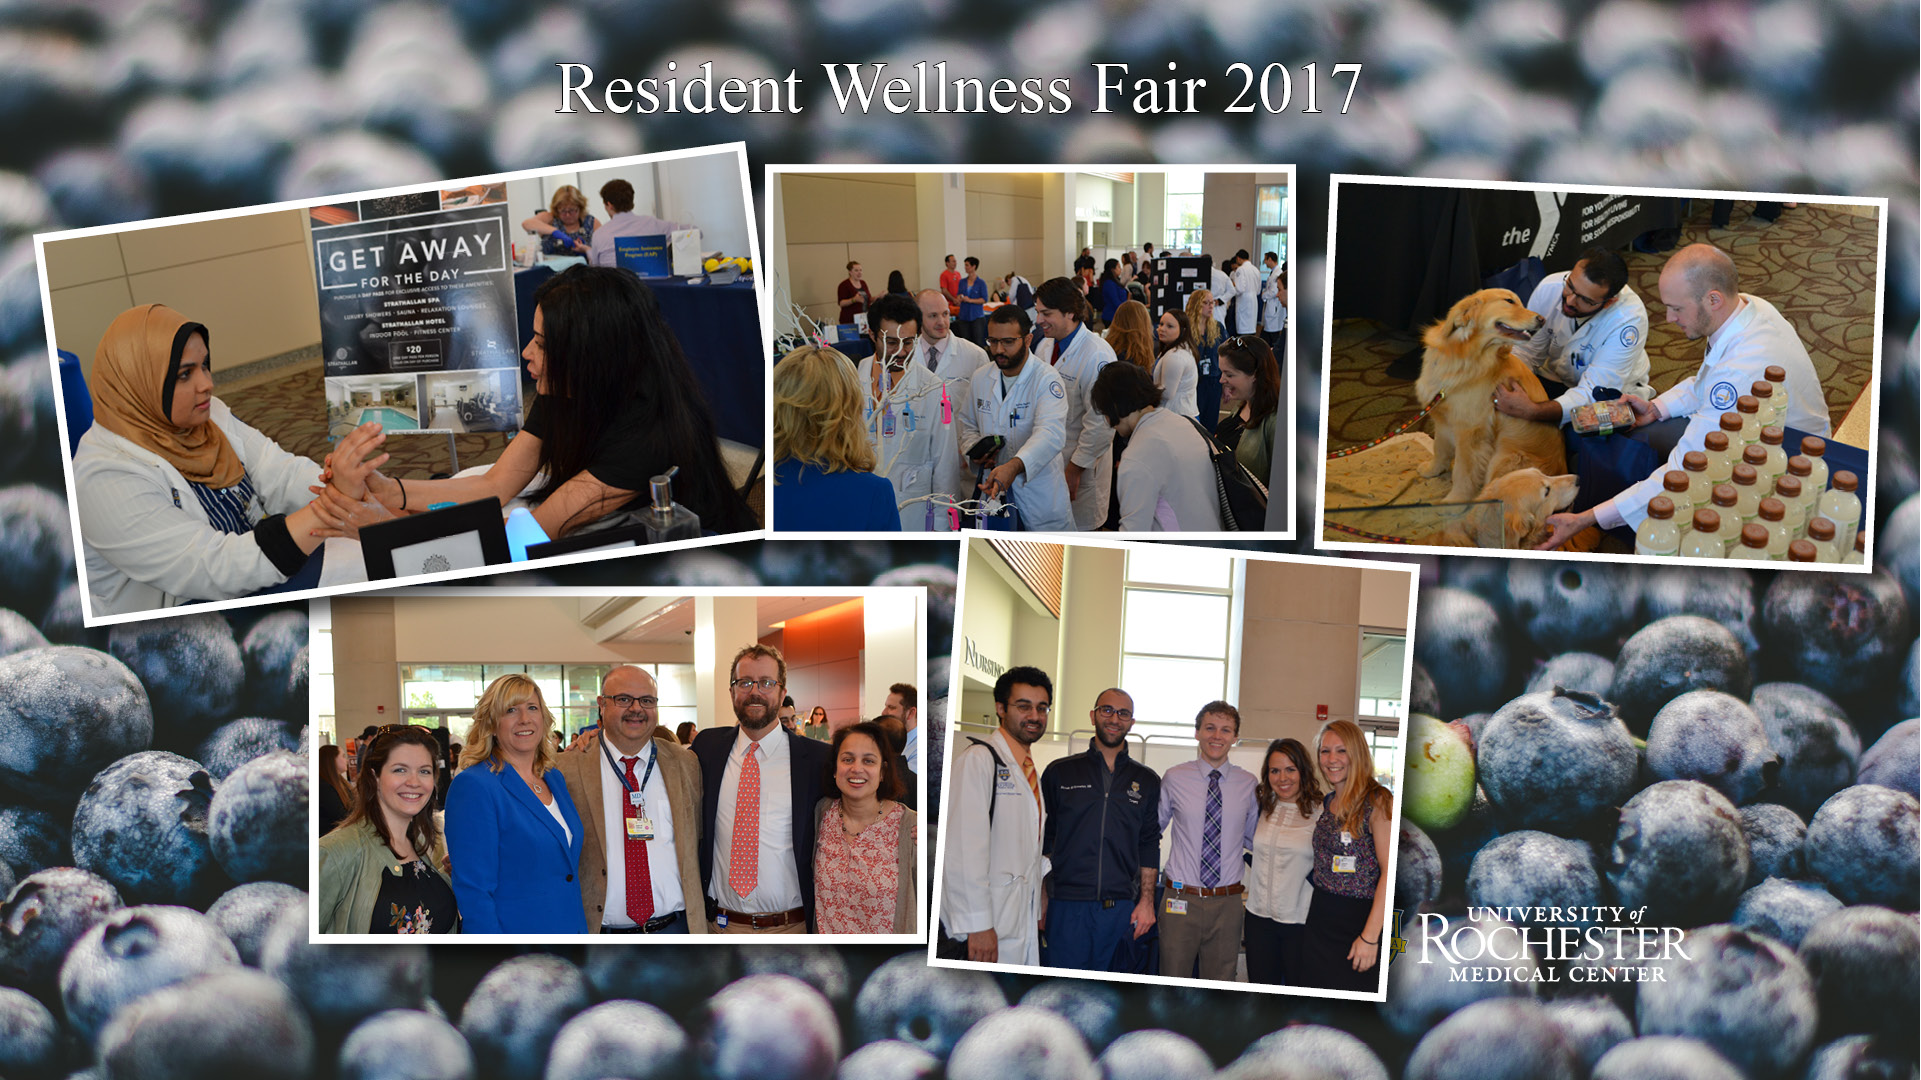 Lt upper corner- Resident Elaa Mahdi, MD getting hand massage from Strathallan Spa, Upper middle- Surgery Residents group photo of Wellness Fair at Saunder's Research Atrium, Upper right- Chris Acquina, MD and Krishna Patel with Pet Therapy Dogs at Wellneess Fair, Bottom lt- Drs. DeCaporale-Ryan, Amy Mills, Rabih Salloum, David Burns and Kathleen Raman group photo at Wellness Fair, Bottom right- Drs. Akash Joshi, Aboude Al-Nowaylati, Trevor Hansen, Sara Neimanis and Katherine Jackson at wellness fair